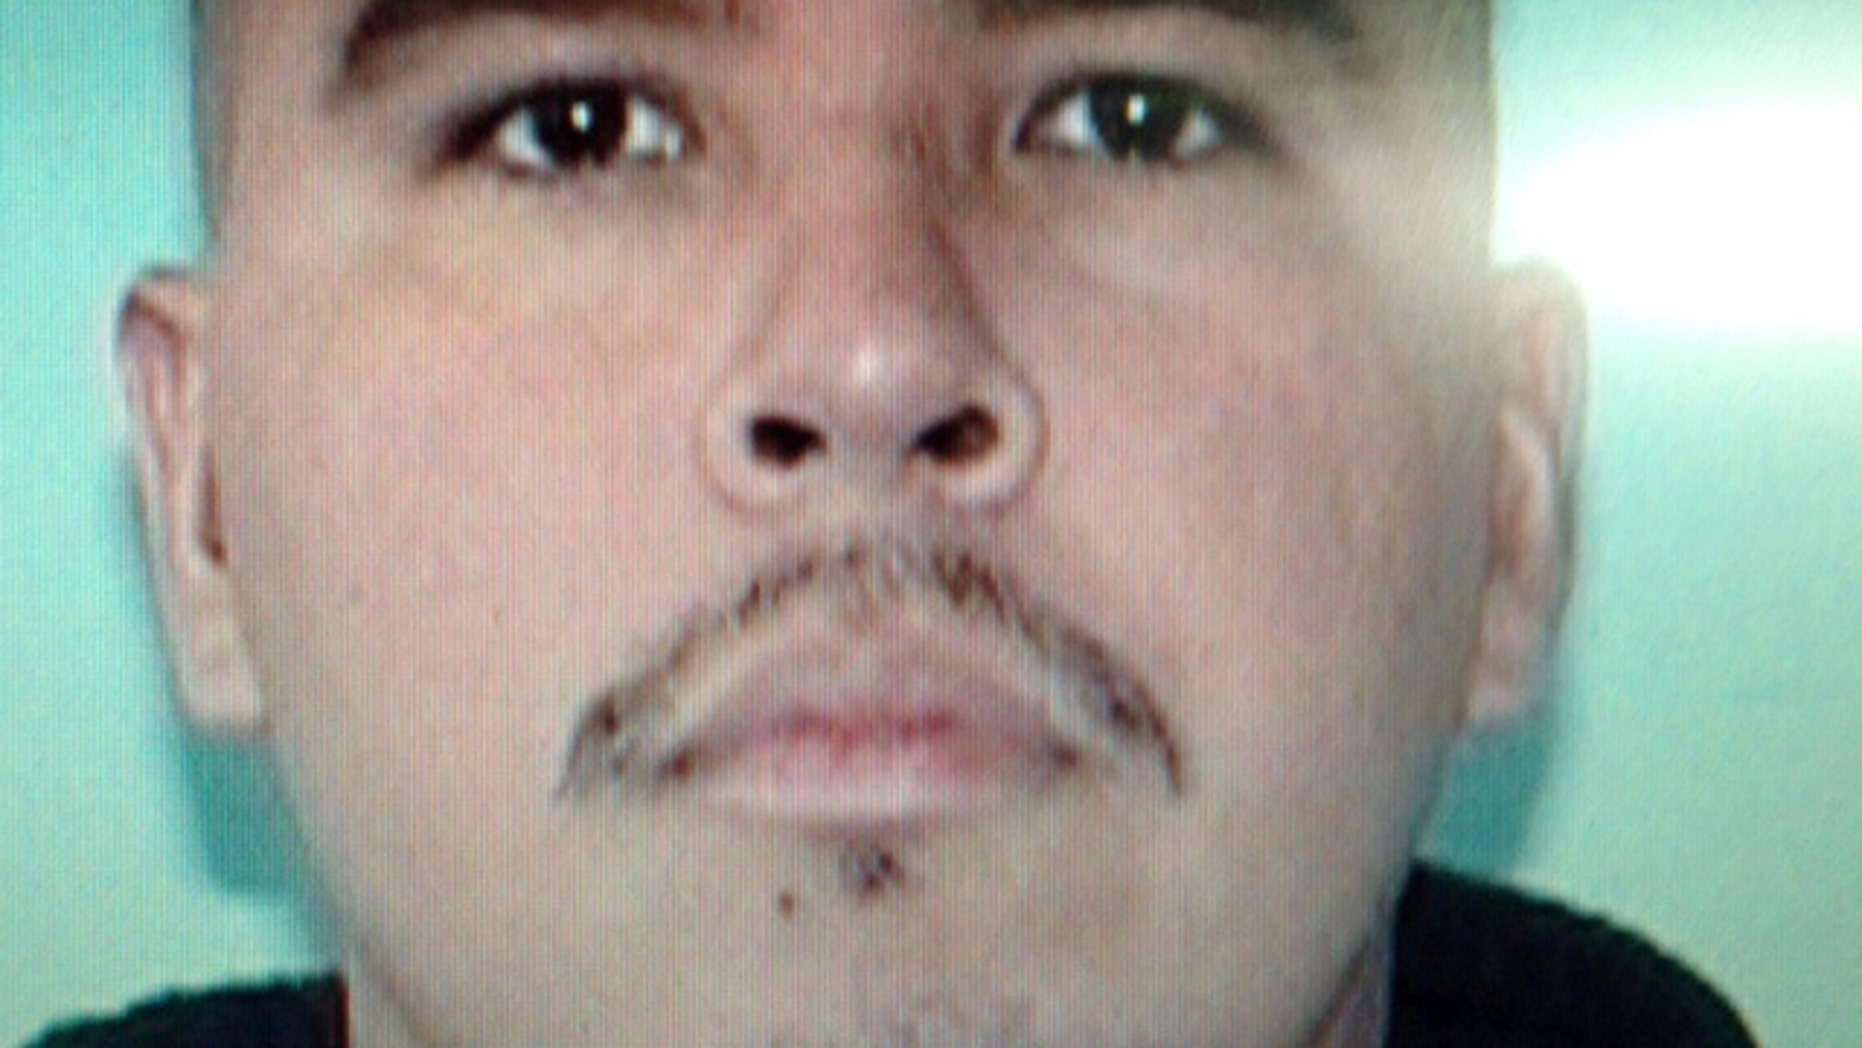 This undated photo provided by the Albuquerque police department shows David Hernandez, 31.